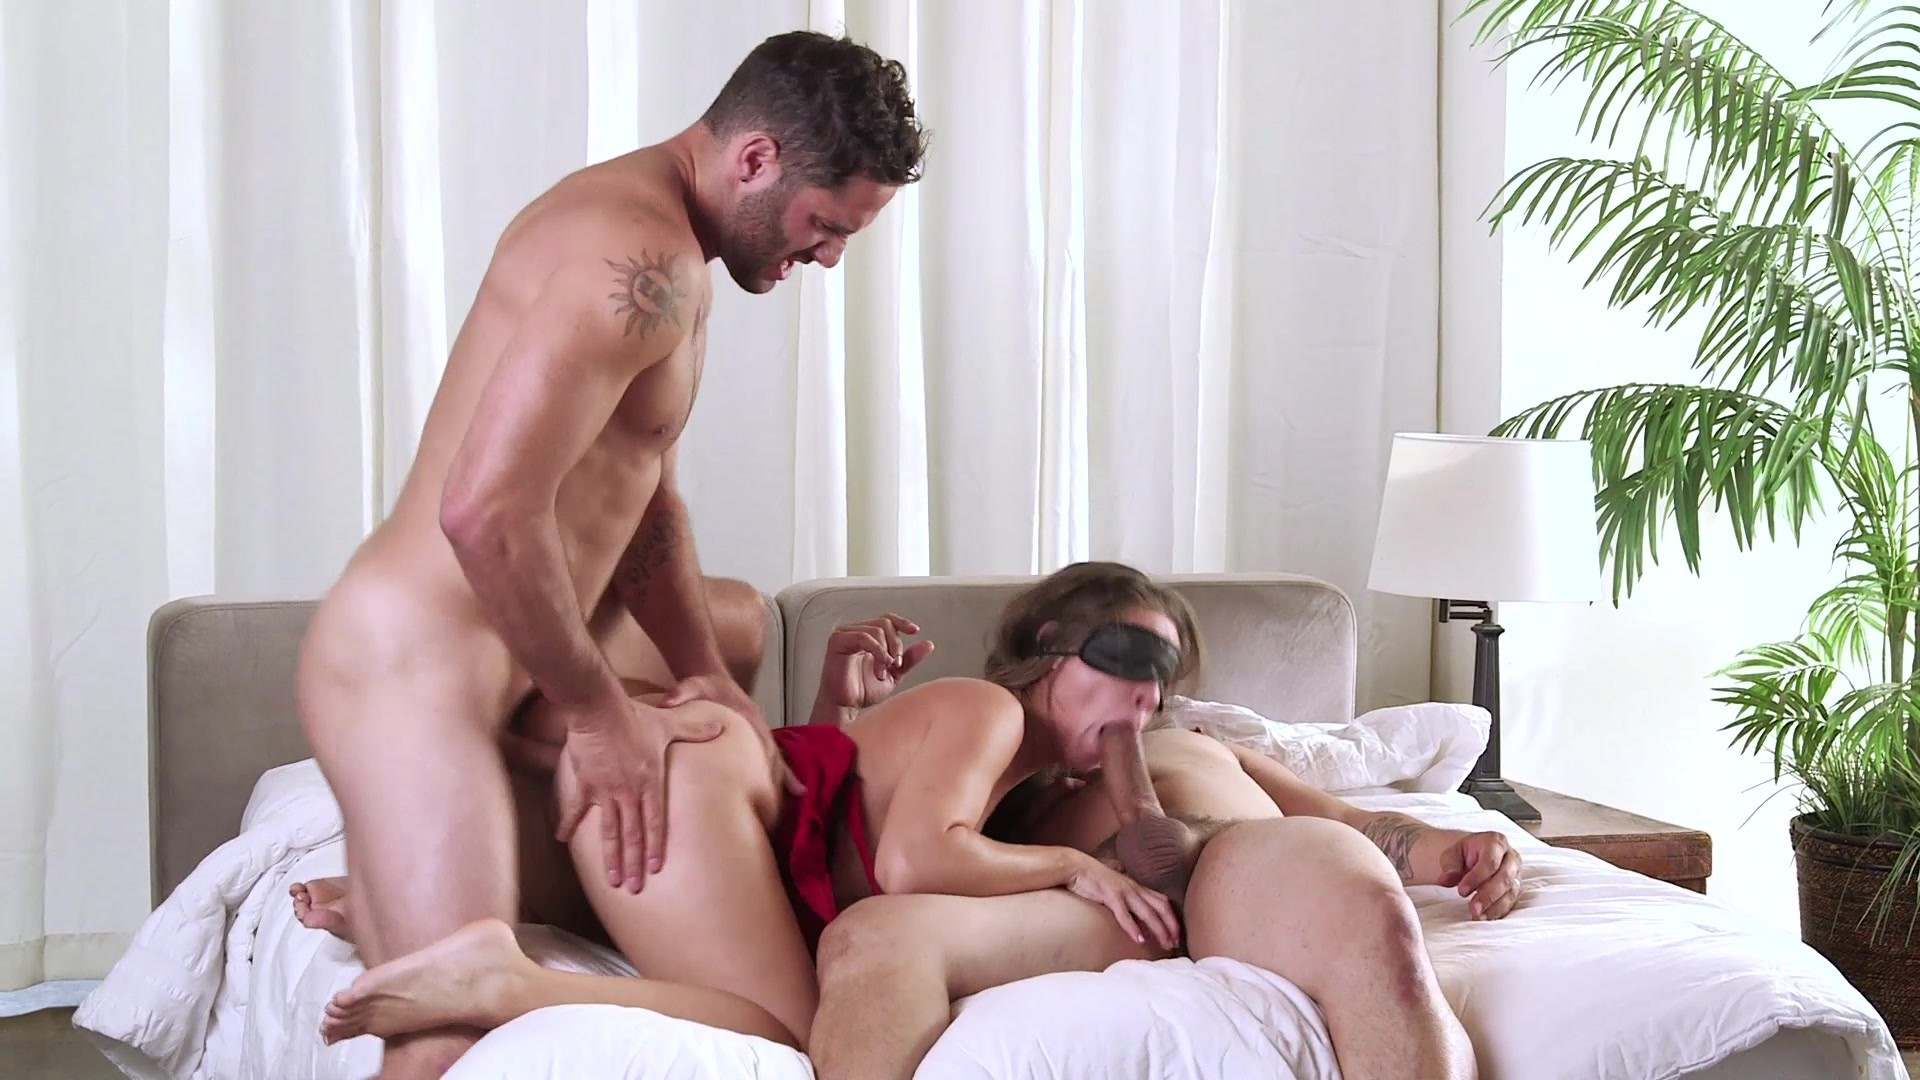 Scene with Anthony Rosano and Cassidy Klein - image 13 out of 20